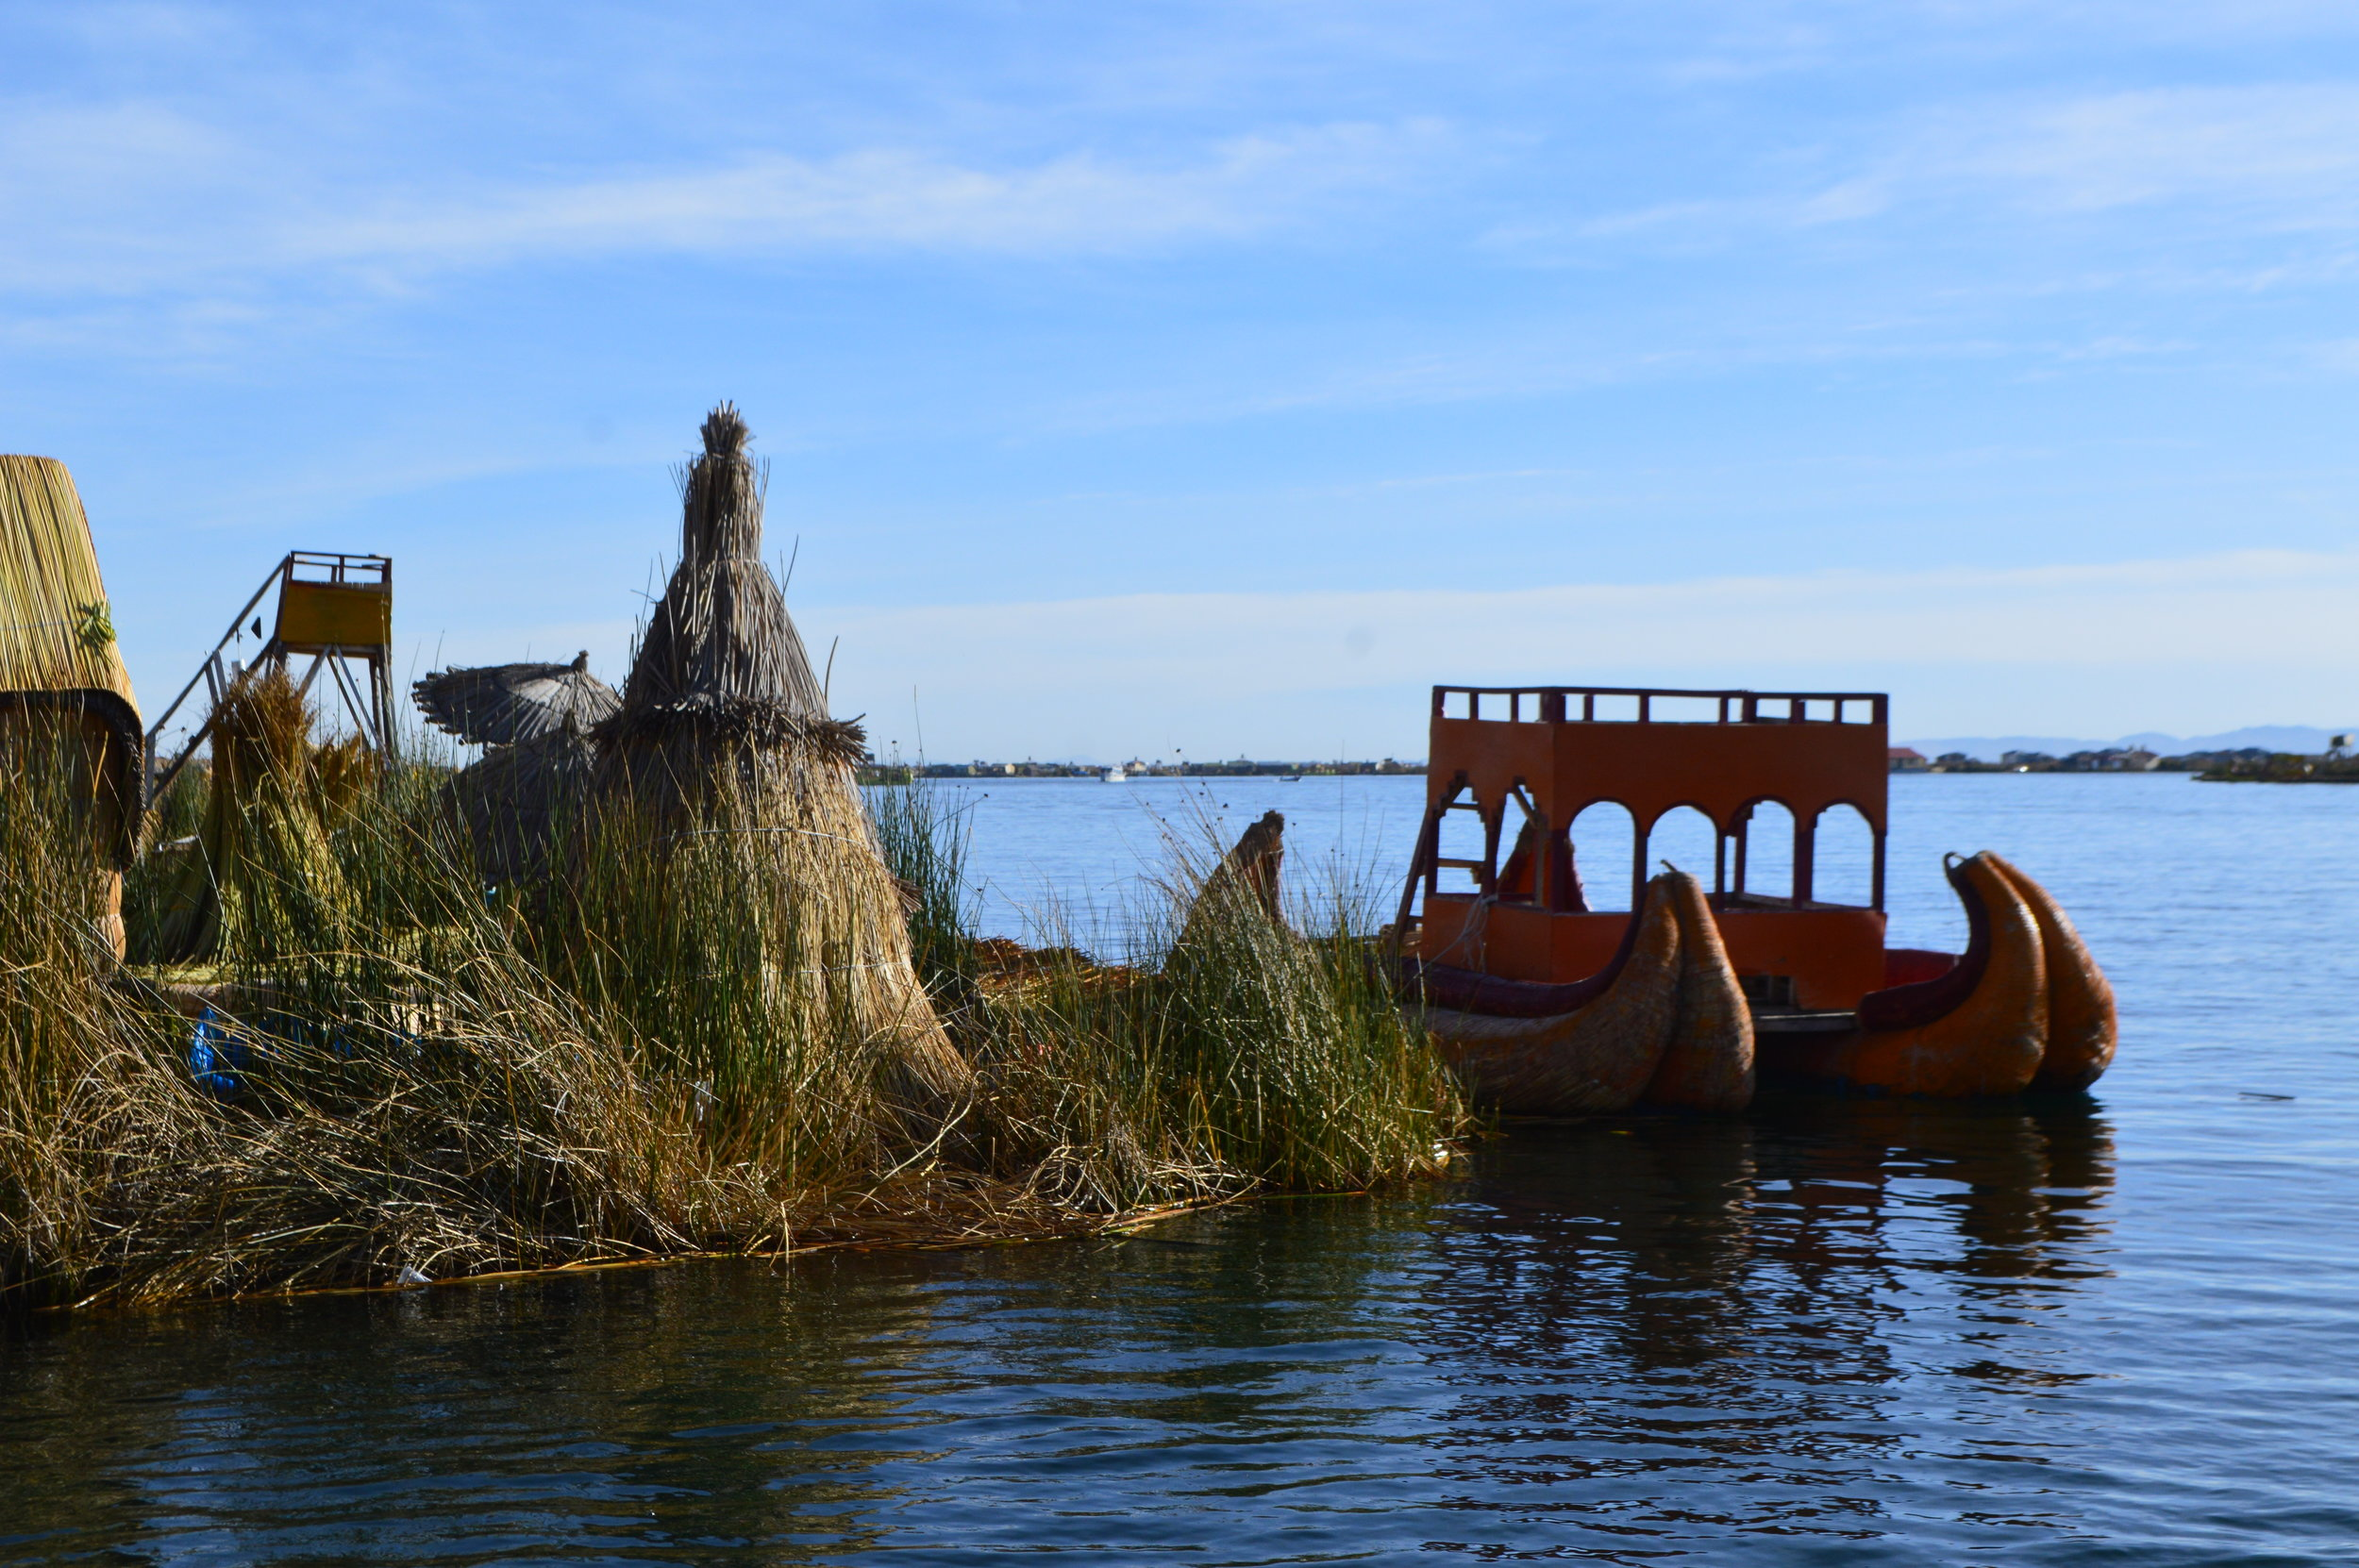 Lake Titicaca floating islands of Uros